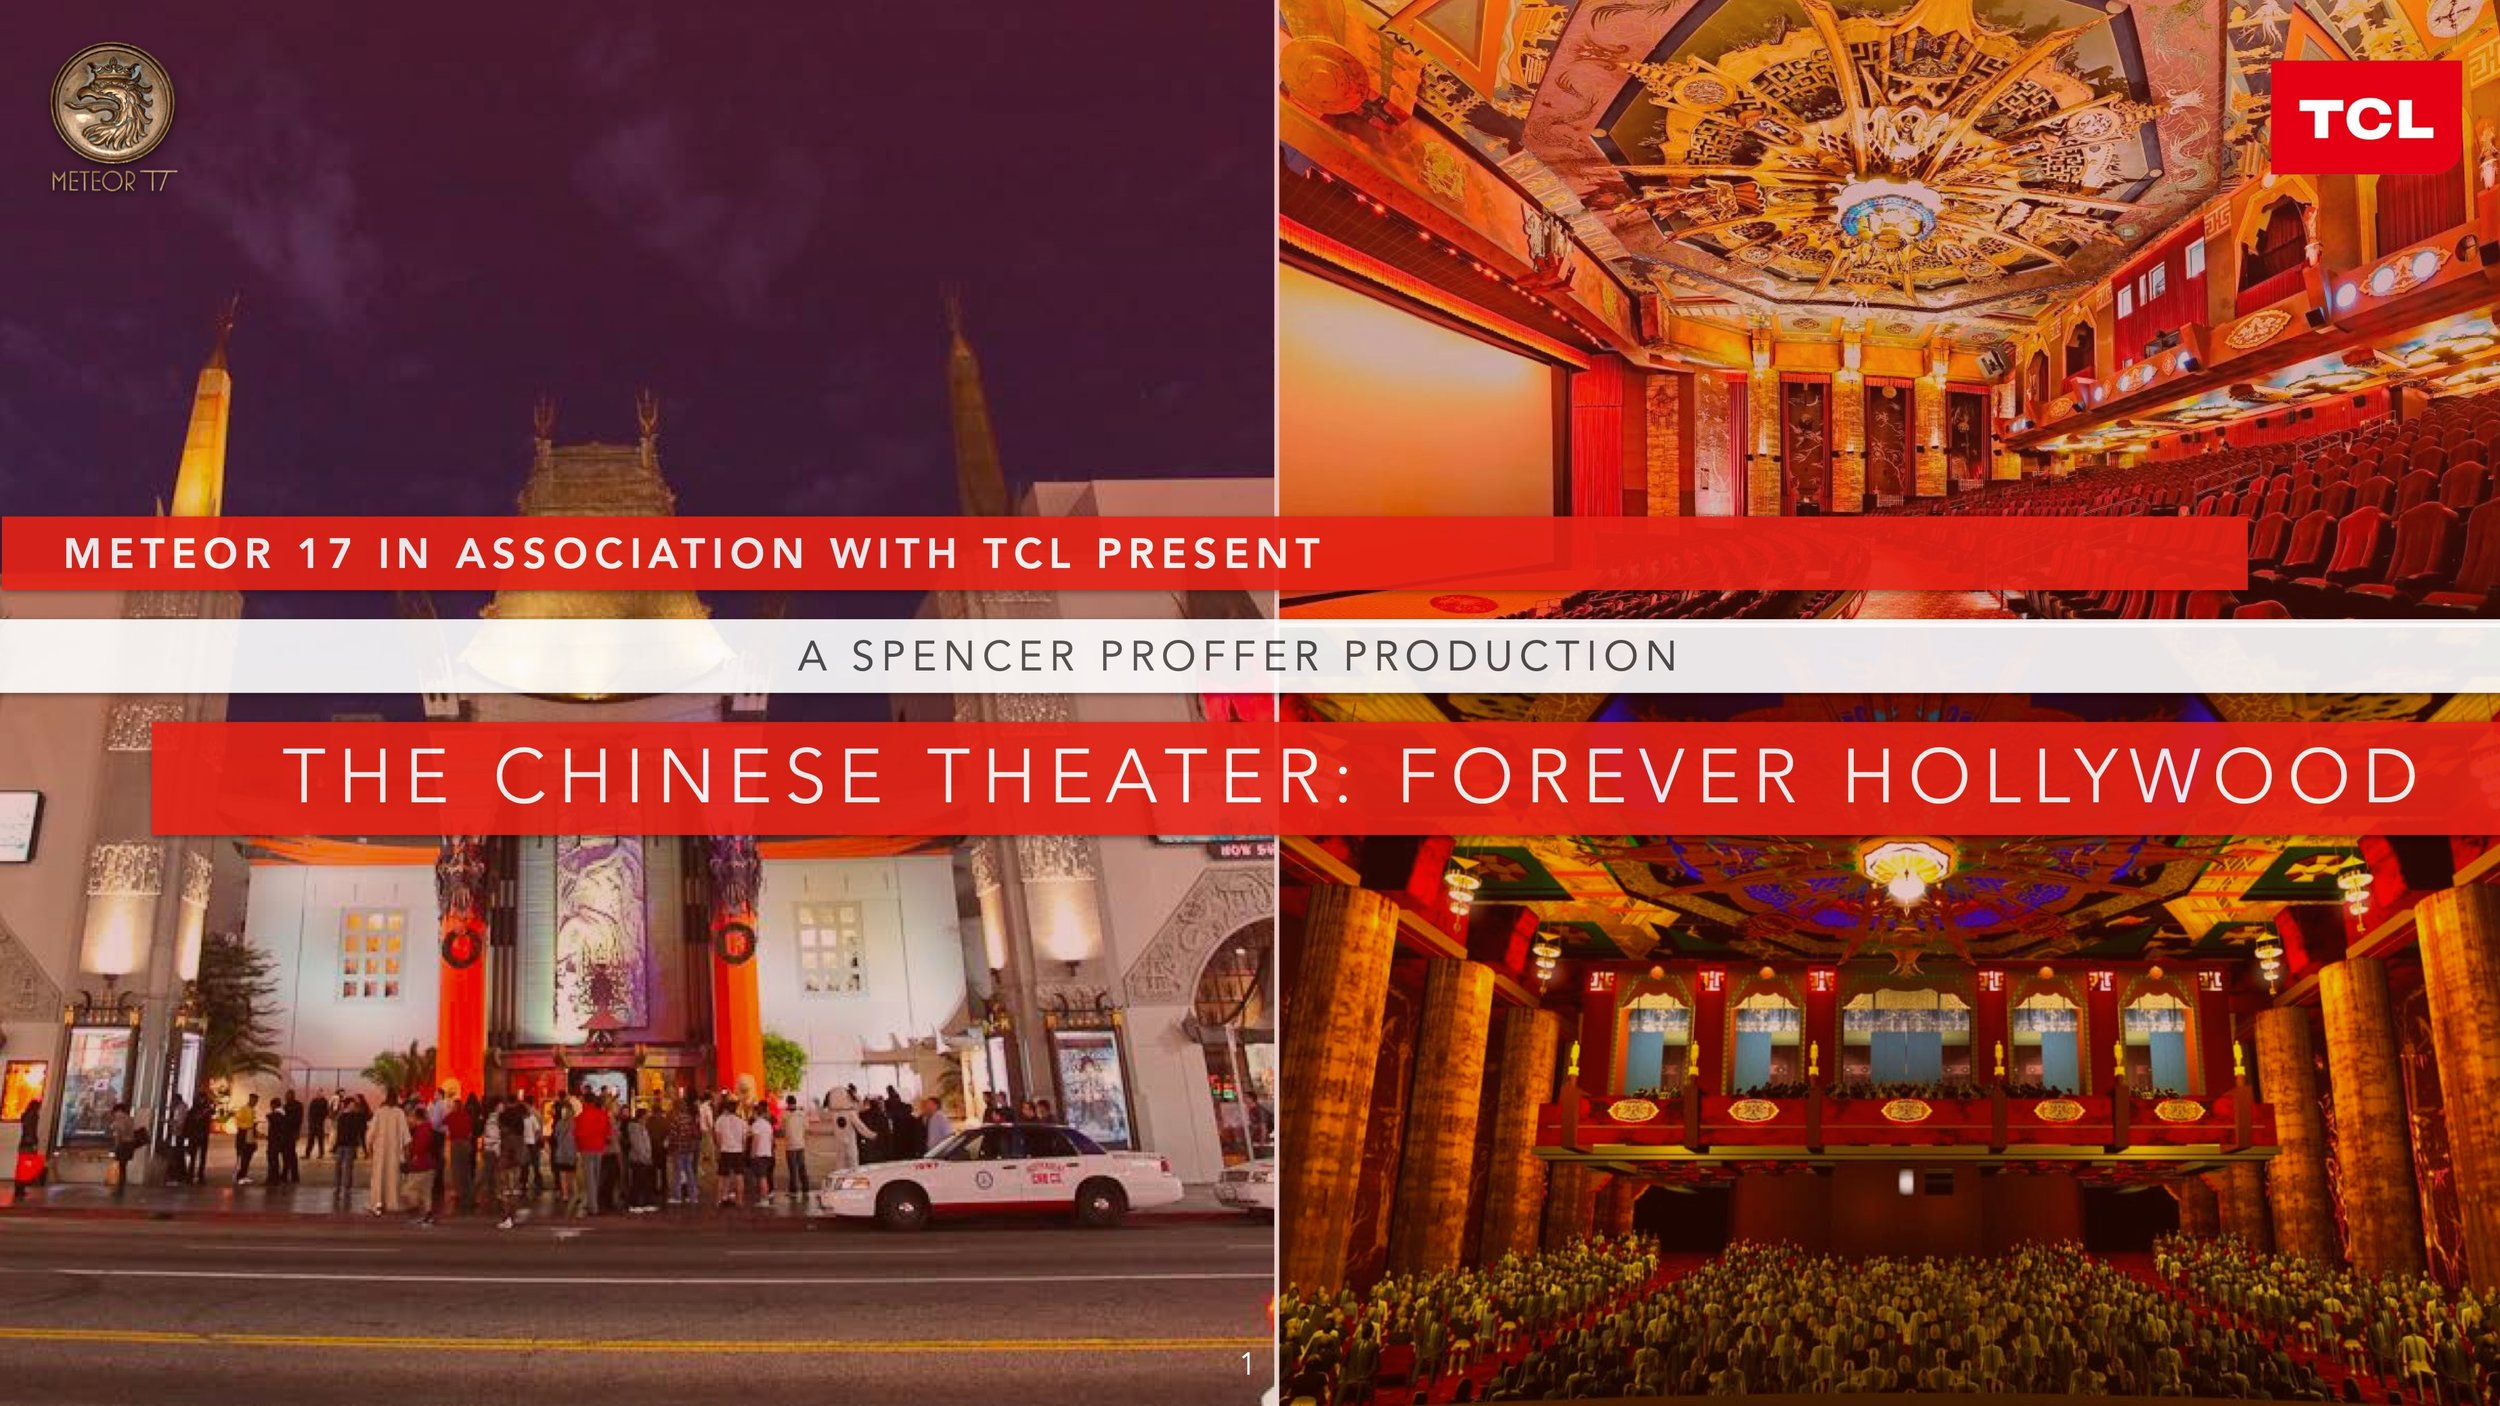 Chinese Theater Forever Hollywood v2+m 21JAN2019.jpeg